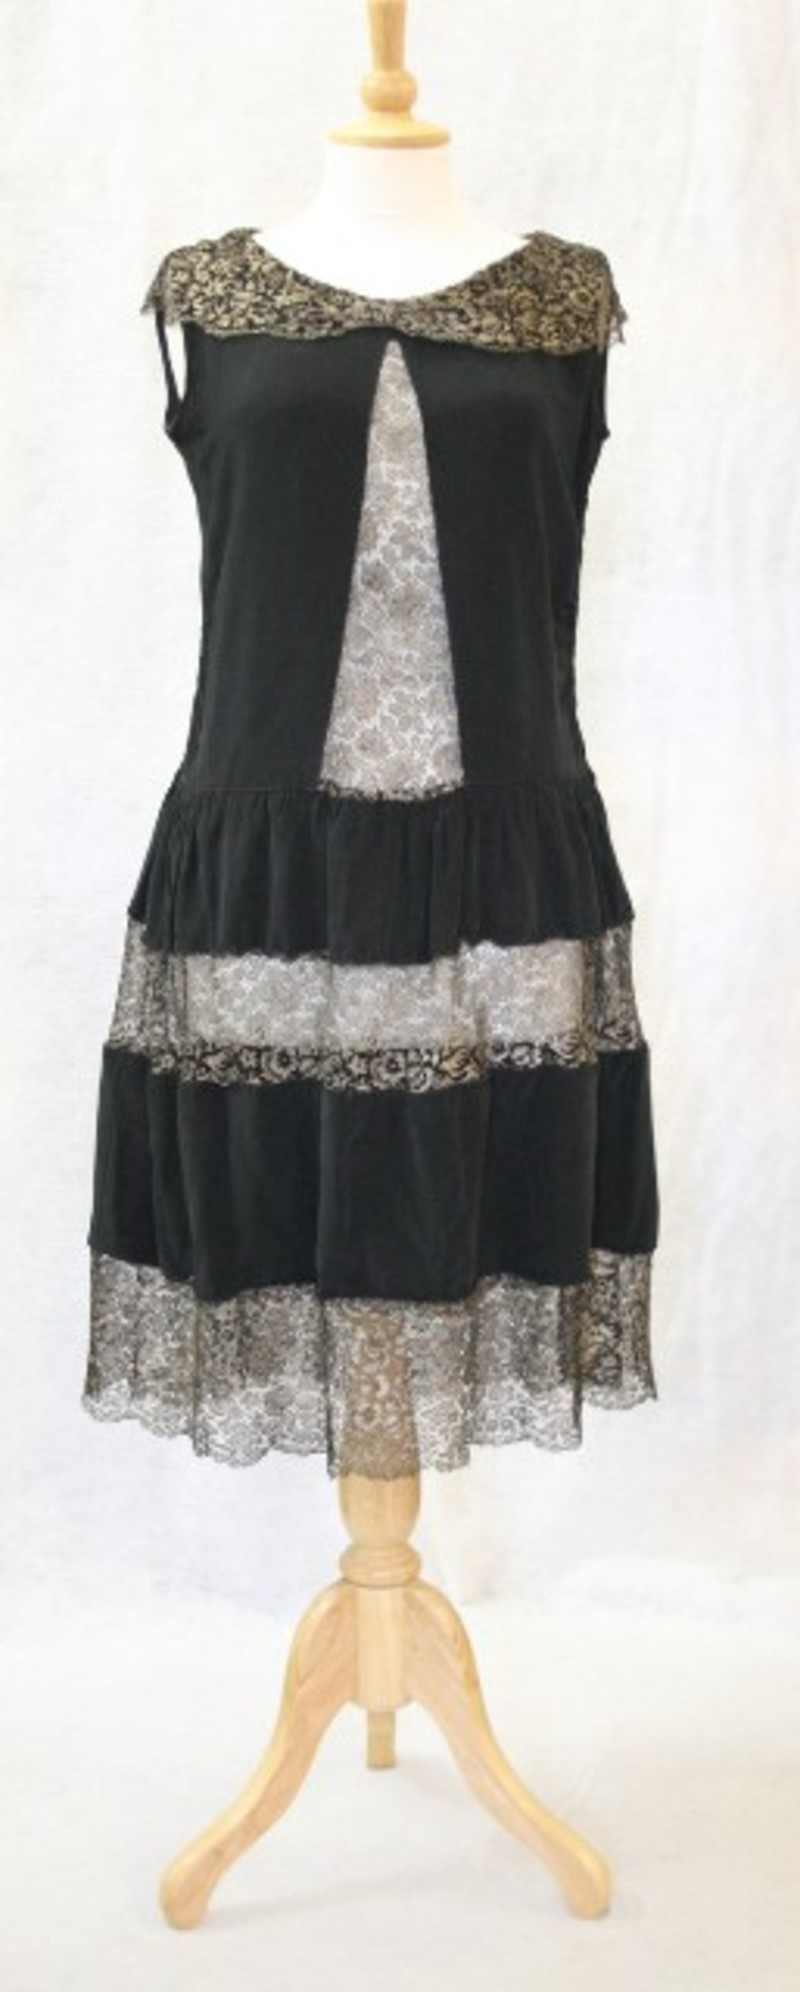 Dress  - What's the cheapest piece of clothing you own?